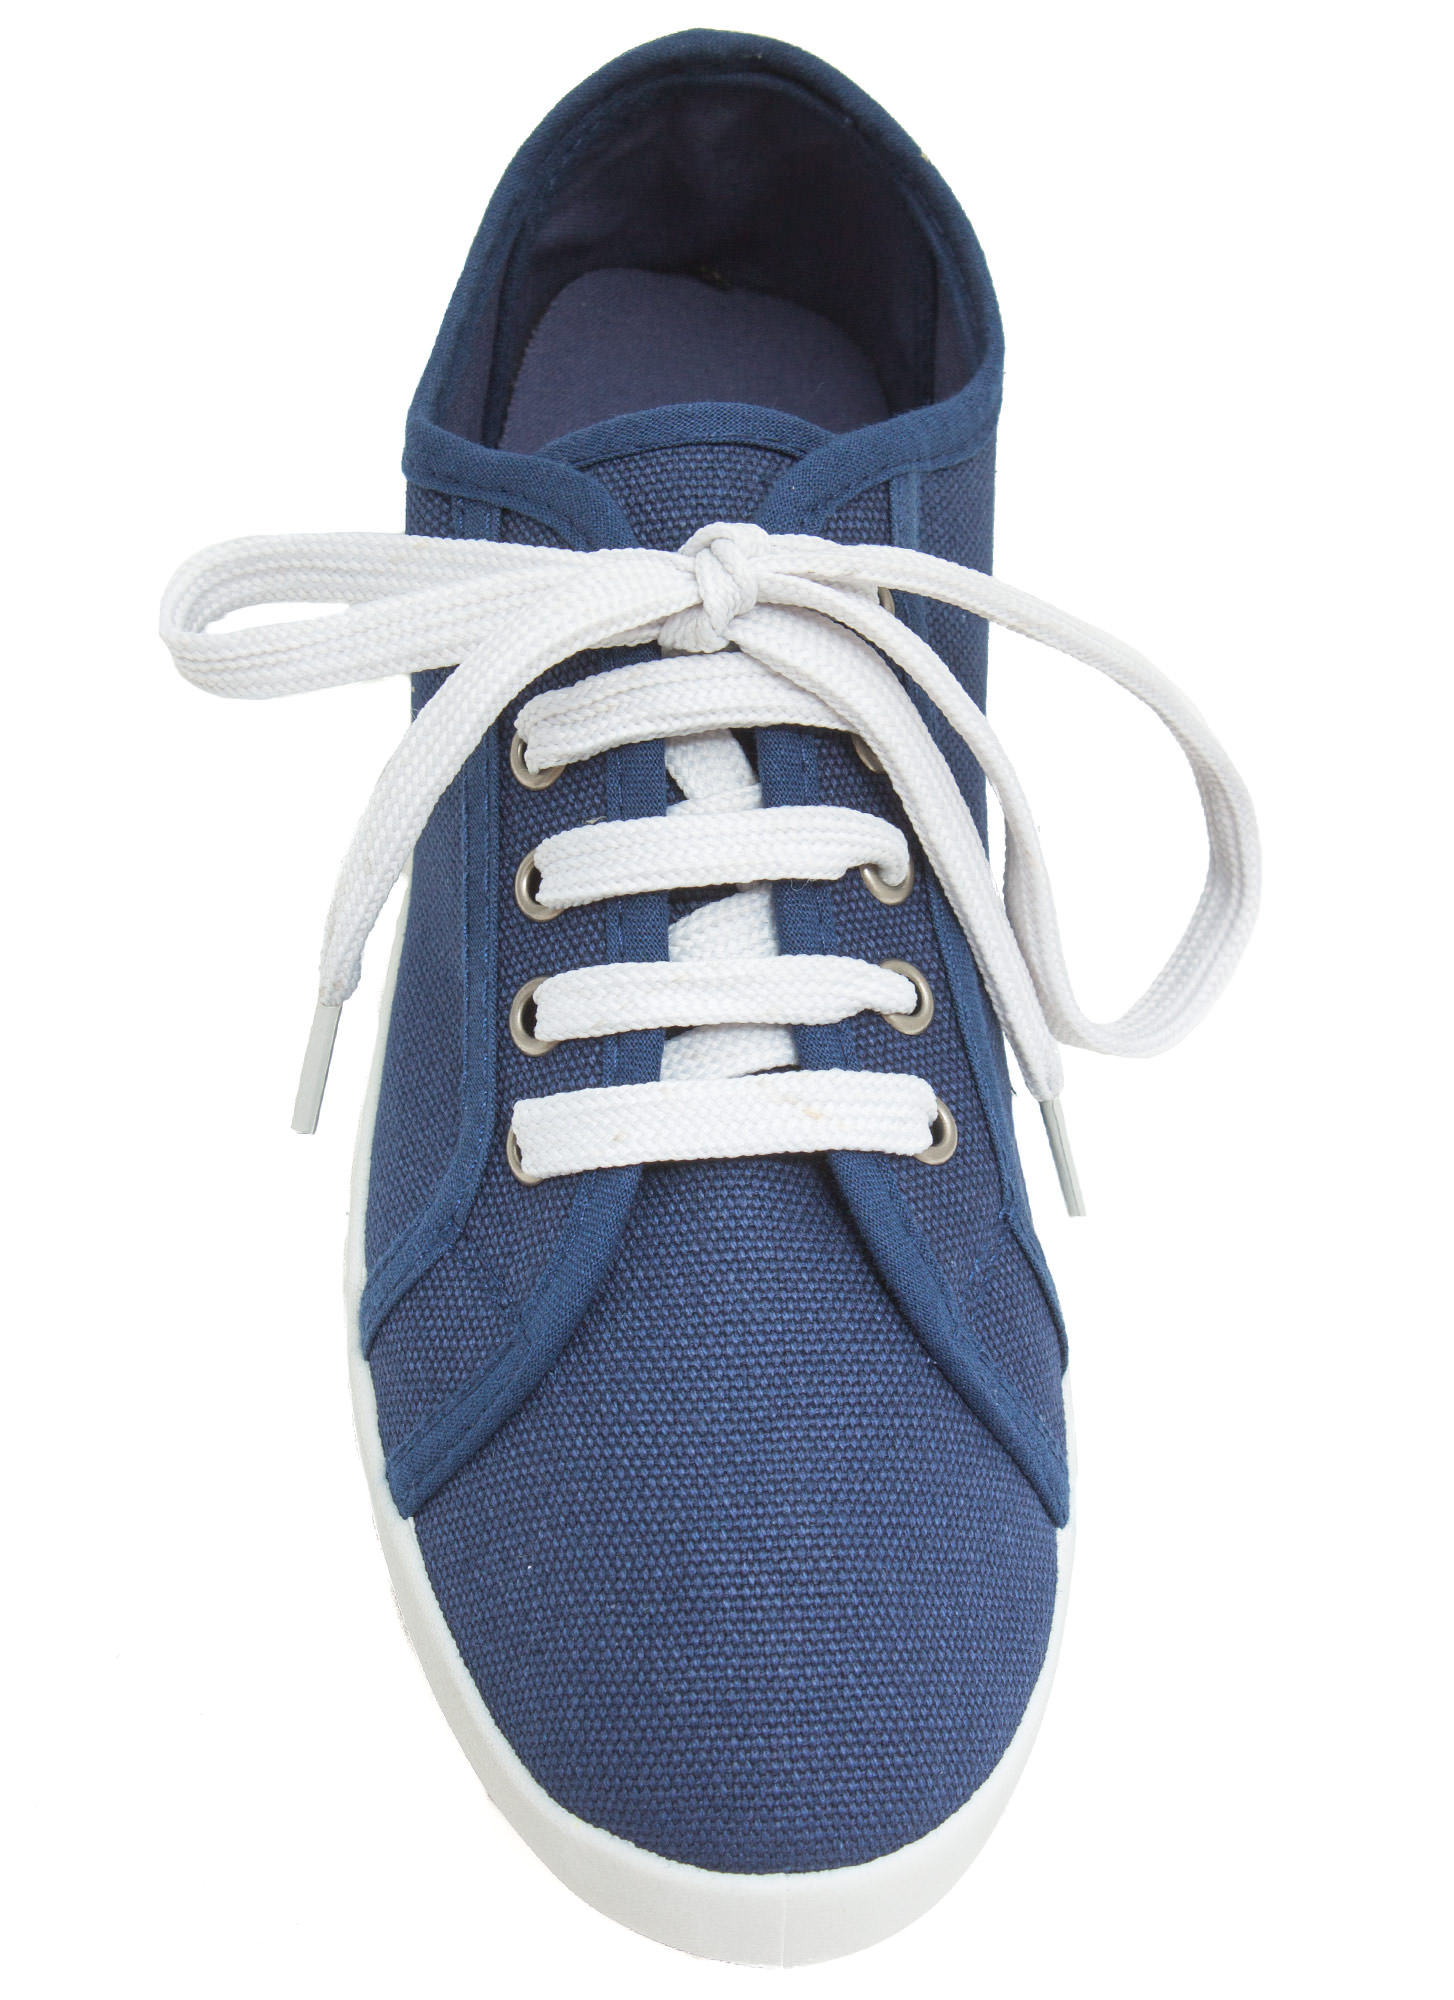 Off-Duty Classic Canvas Sneakers NAVY